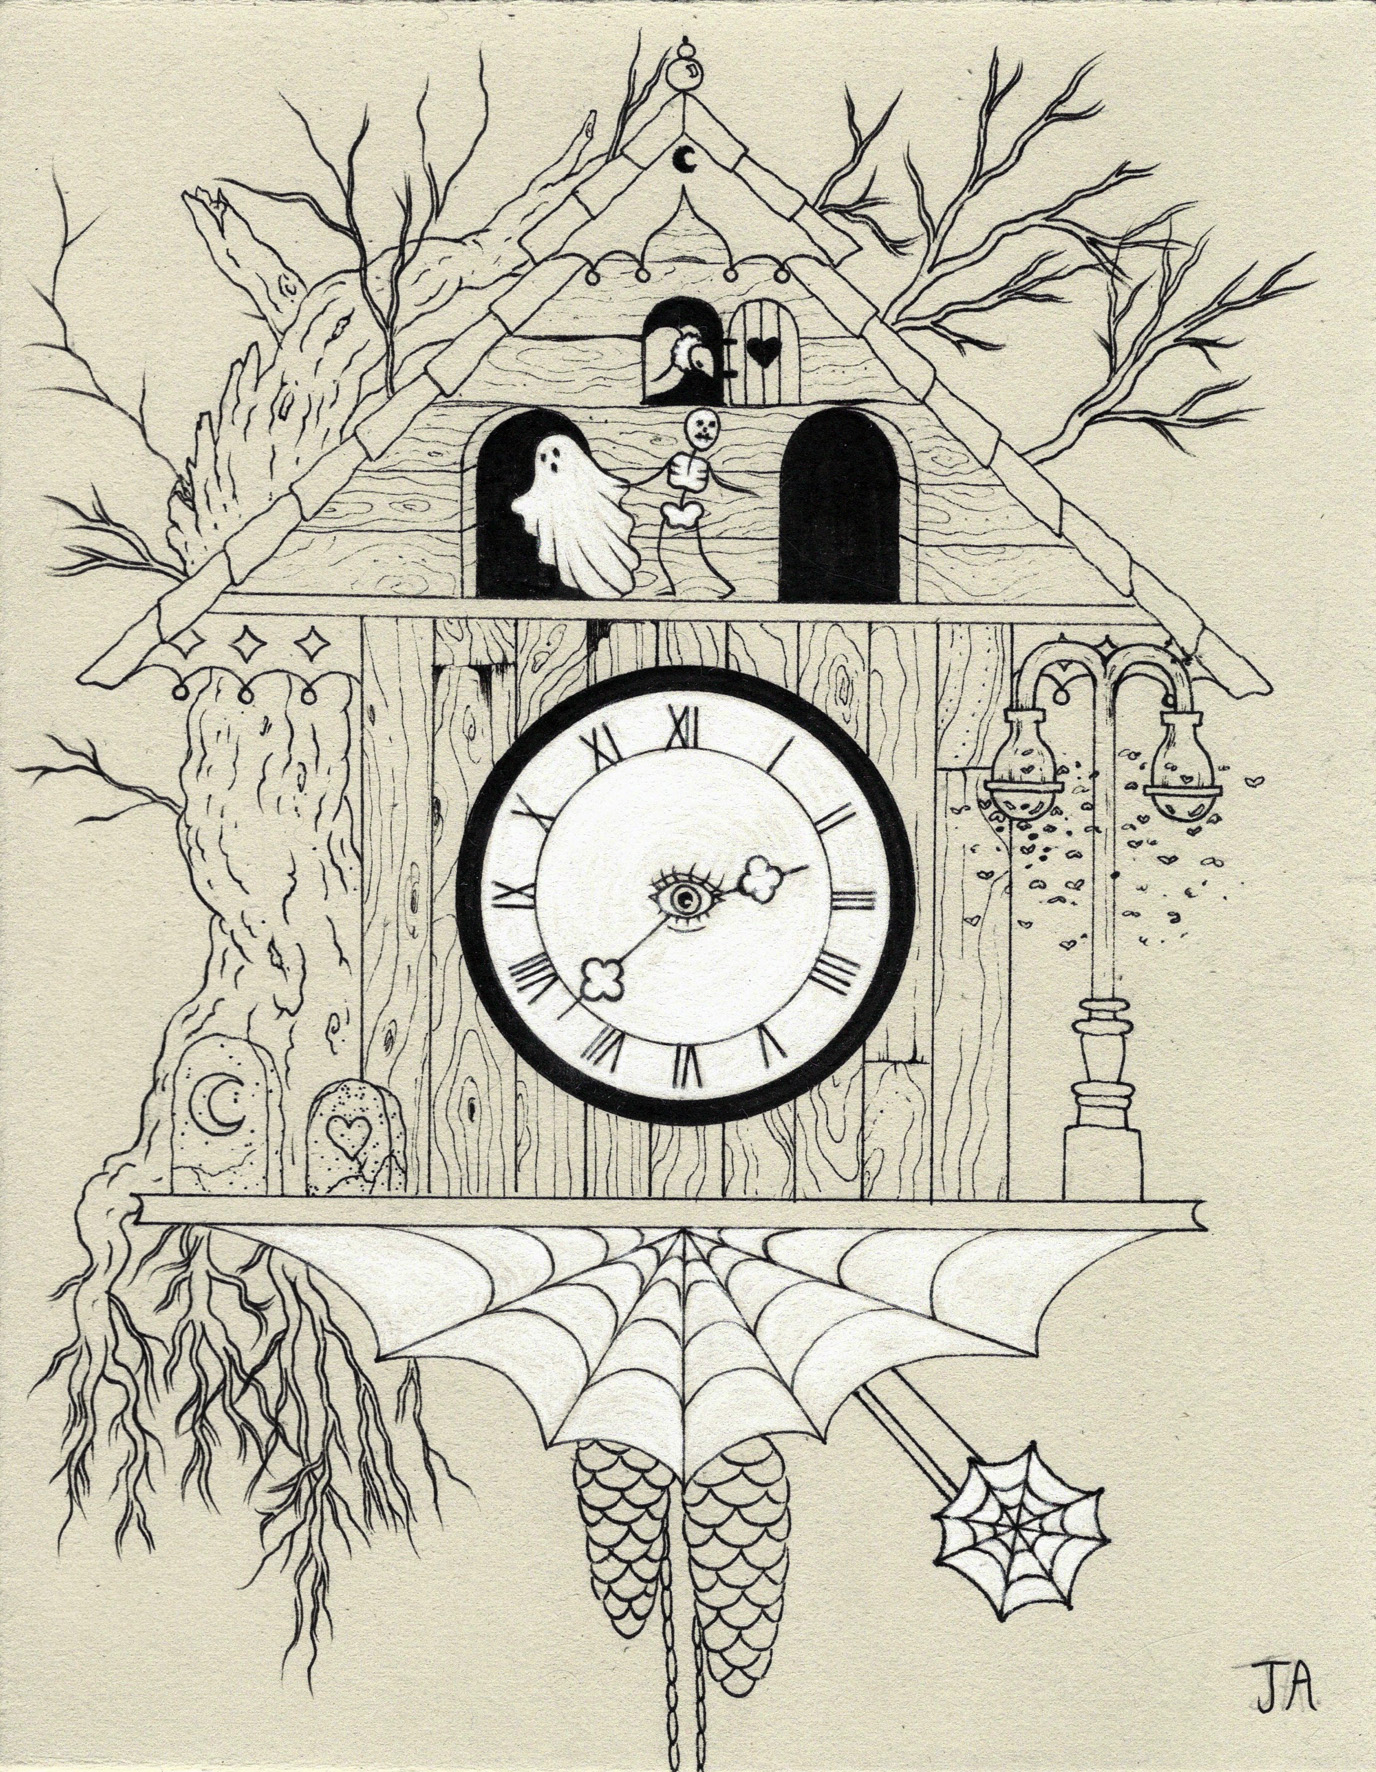 time of death cuckoo clock.jpg